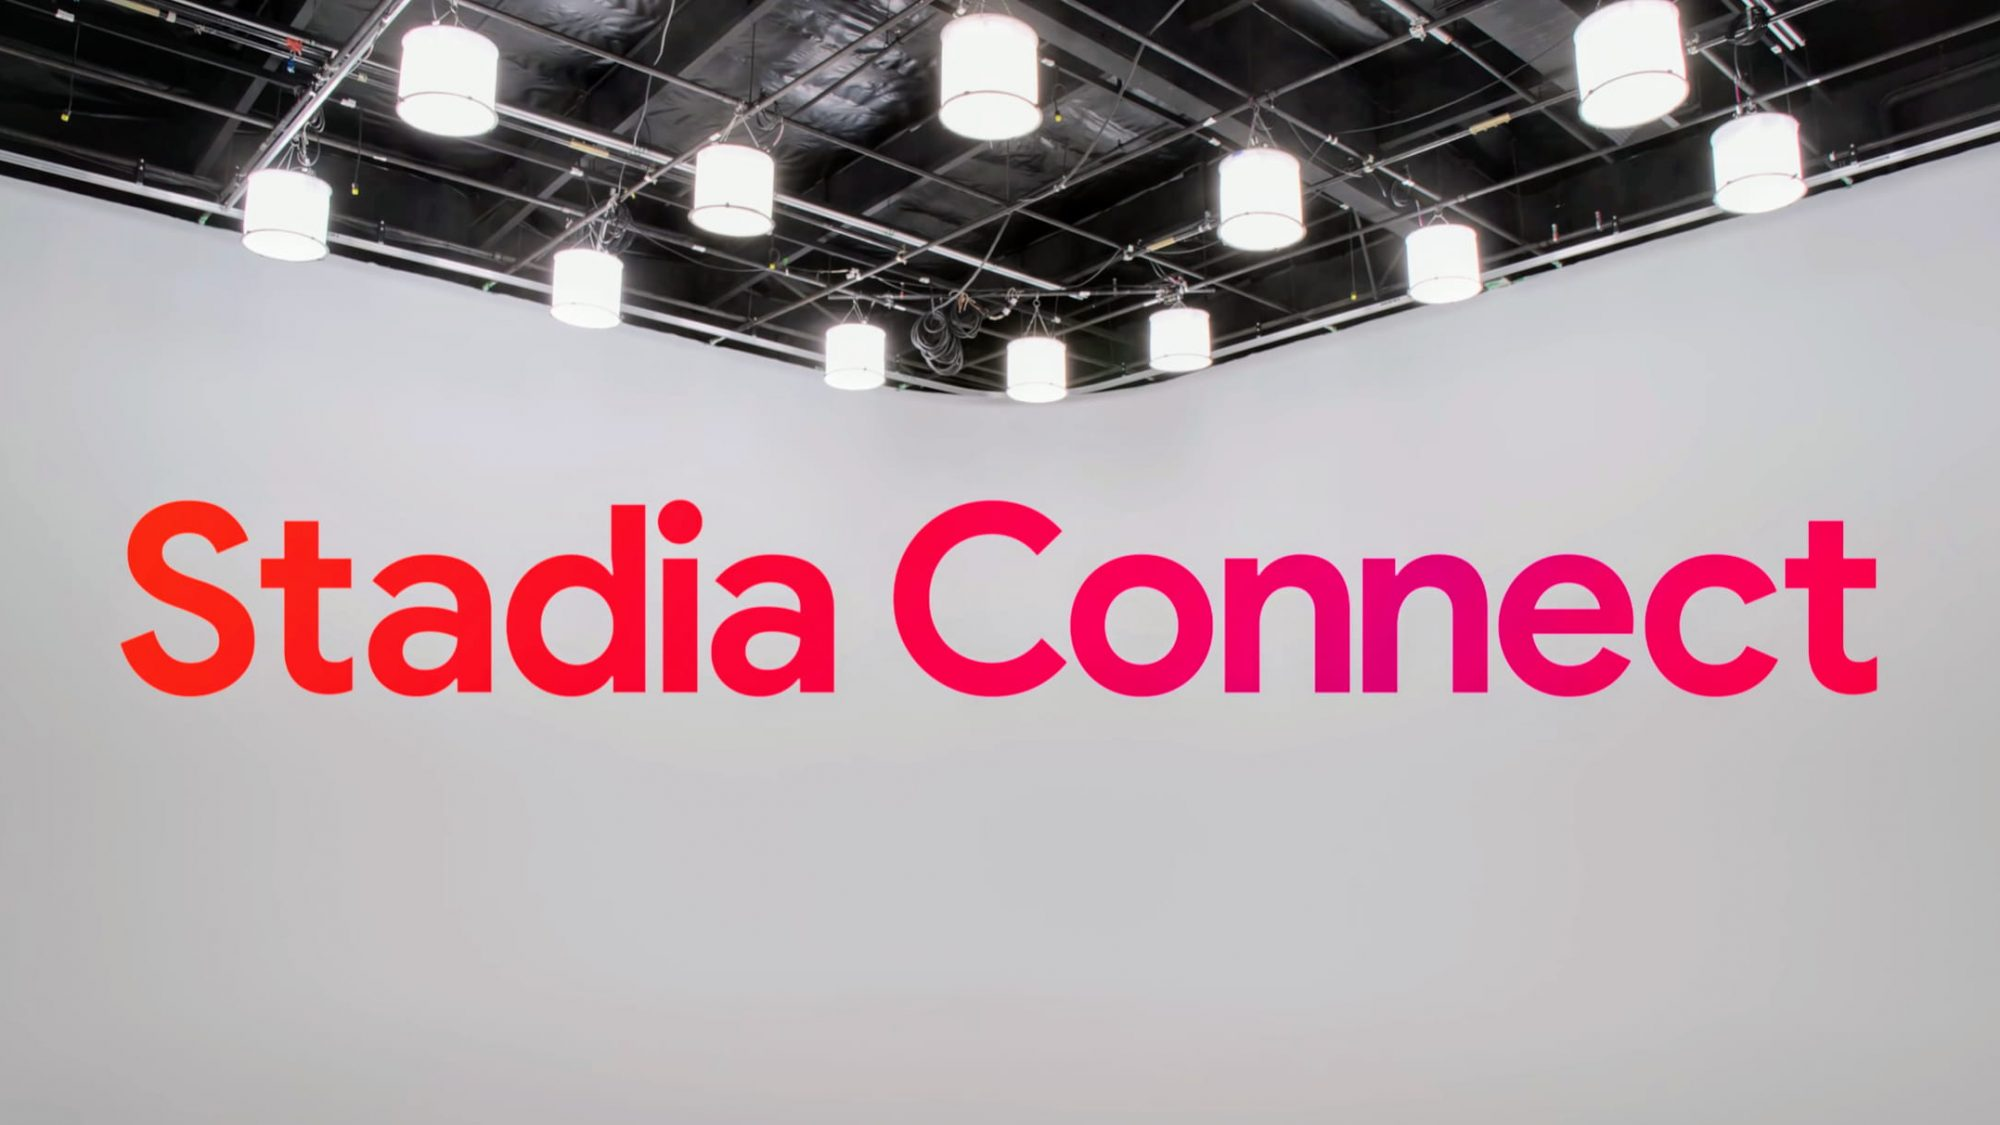 Come watch the latest Stadia Connect with us today at 12PM EST